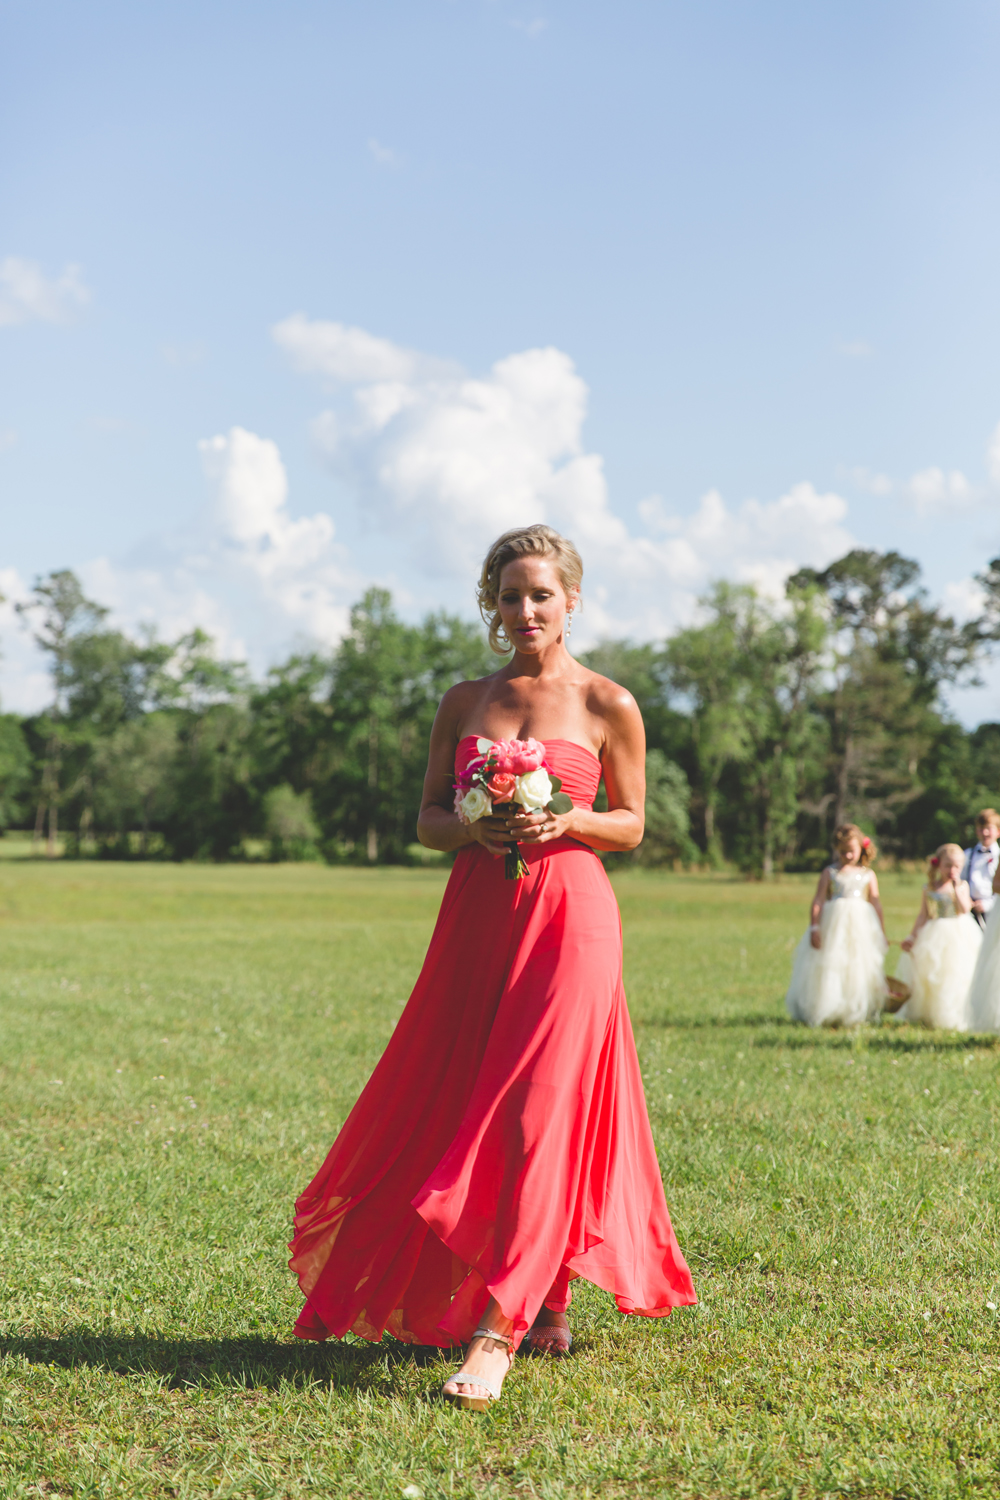 jaime diorio destination orlando wedding photographer outdoor barn wedding privately owned ranch photos (522).jpg